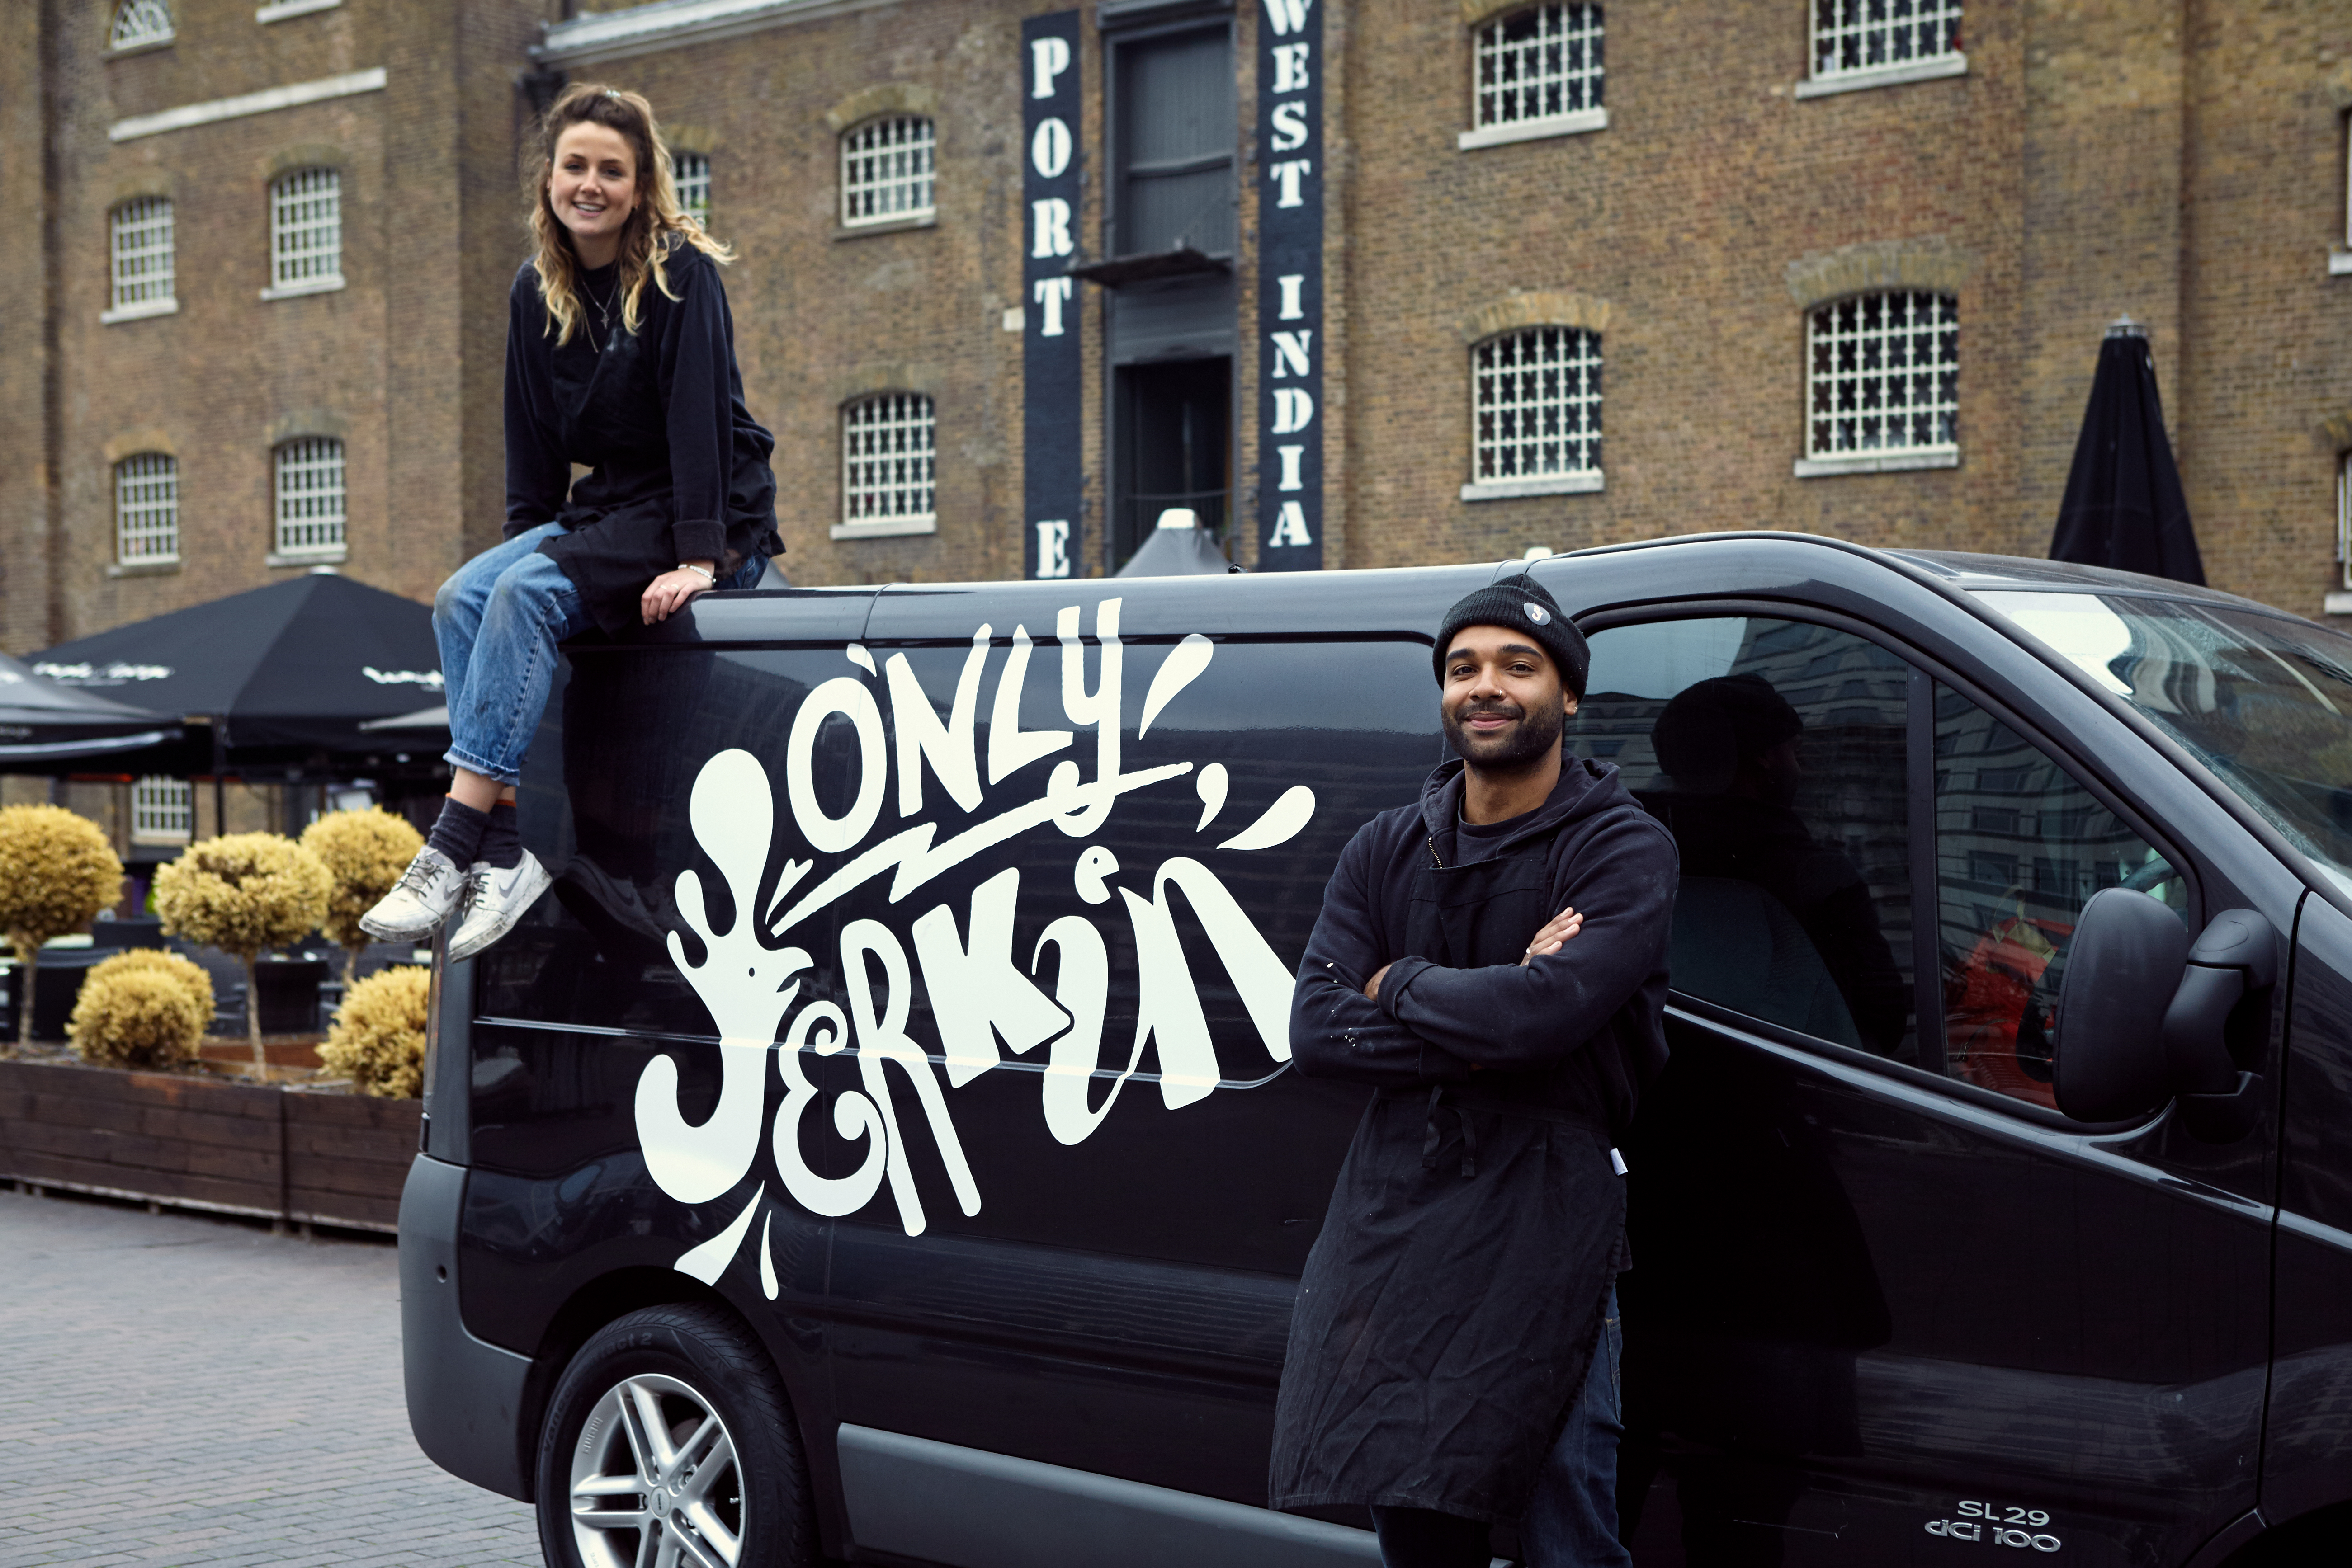 Only-Jerkin-Food-Truck-Catering